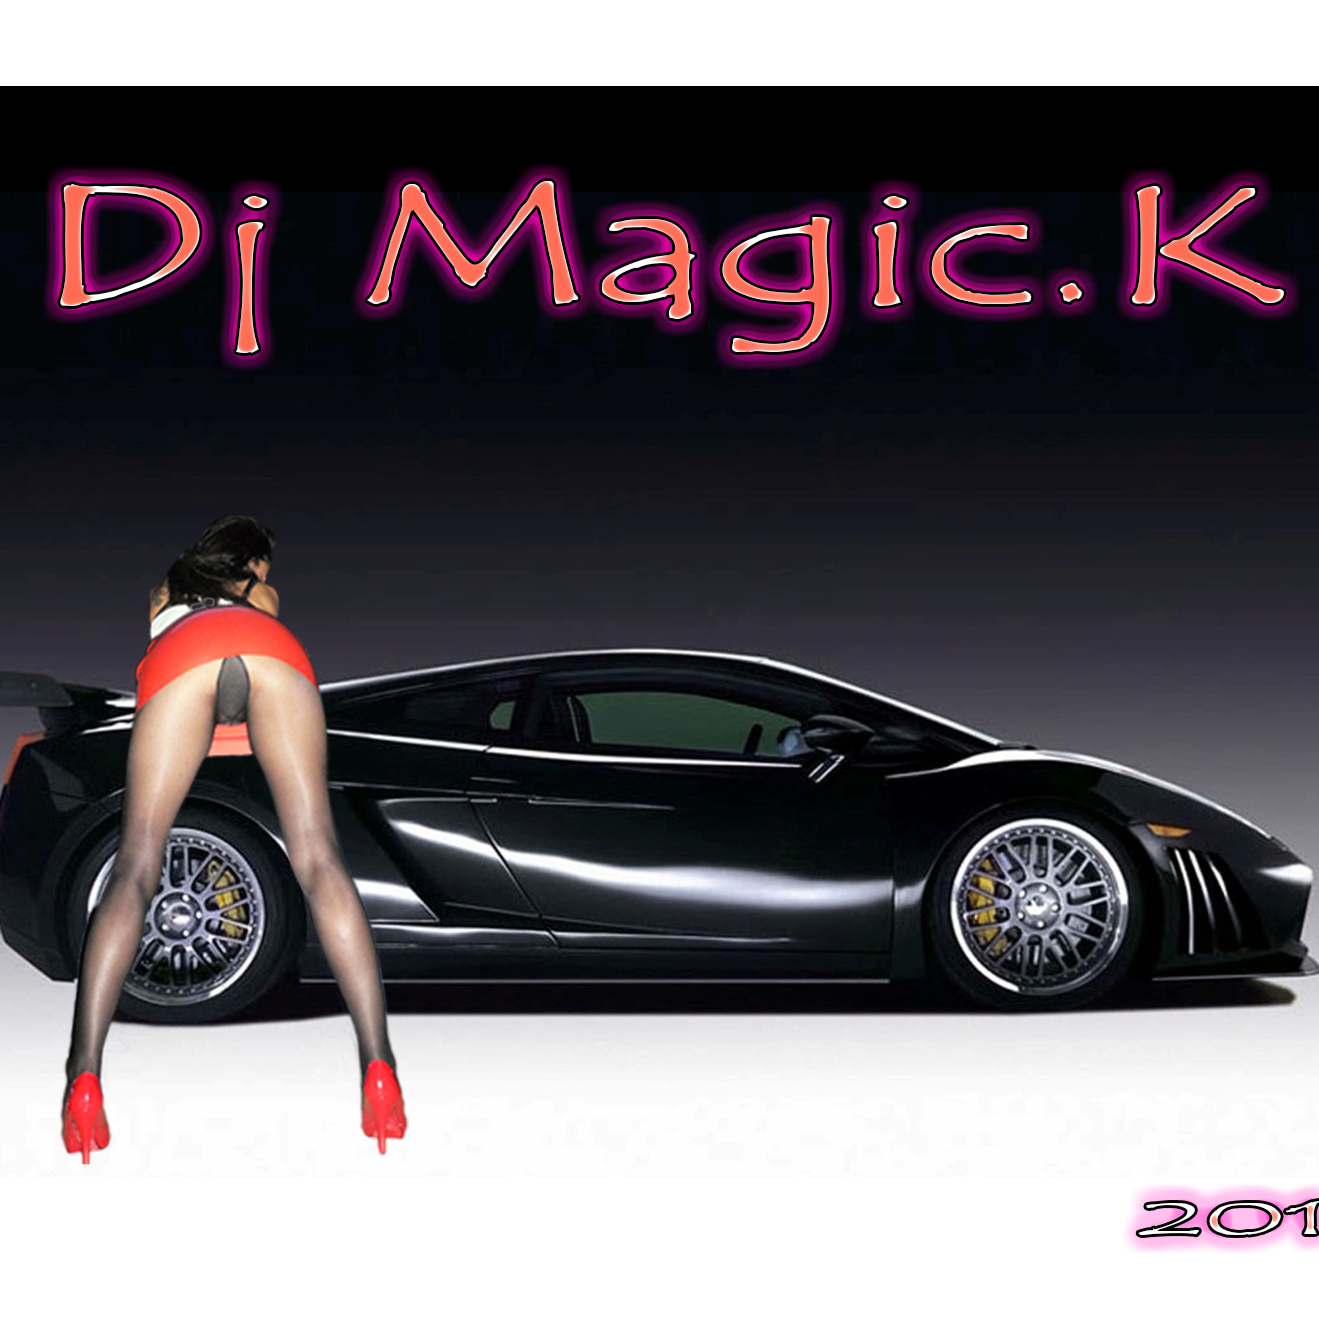 DJ MAGIC.K